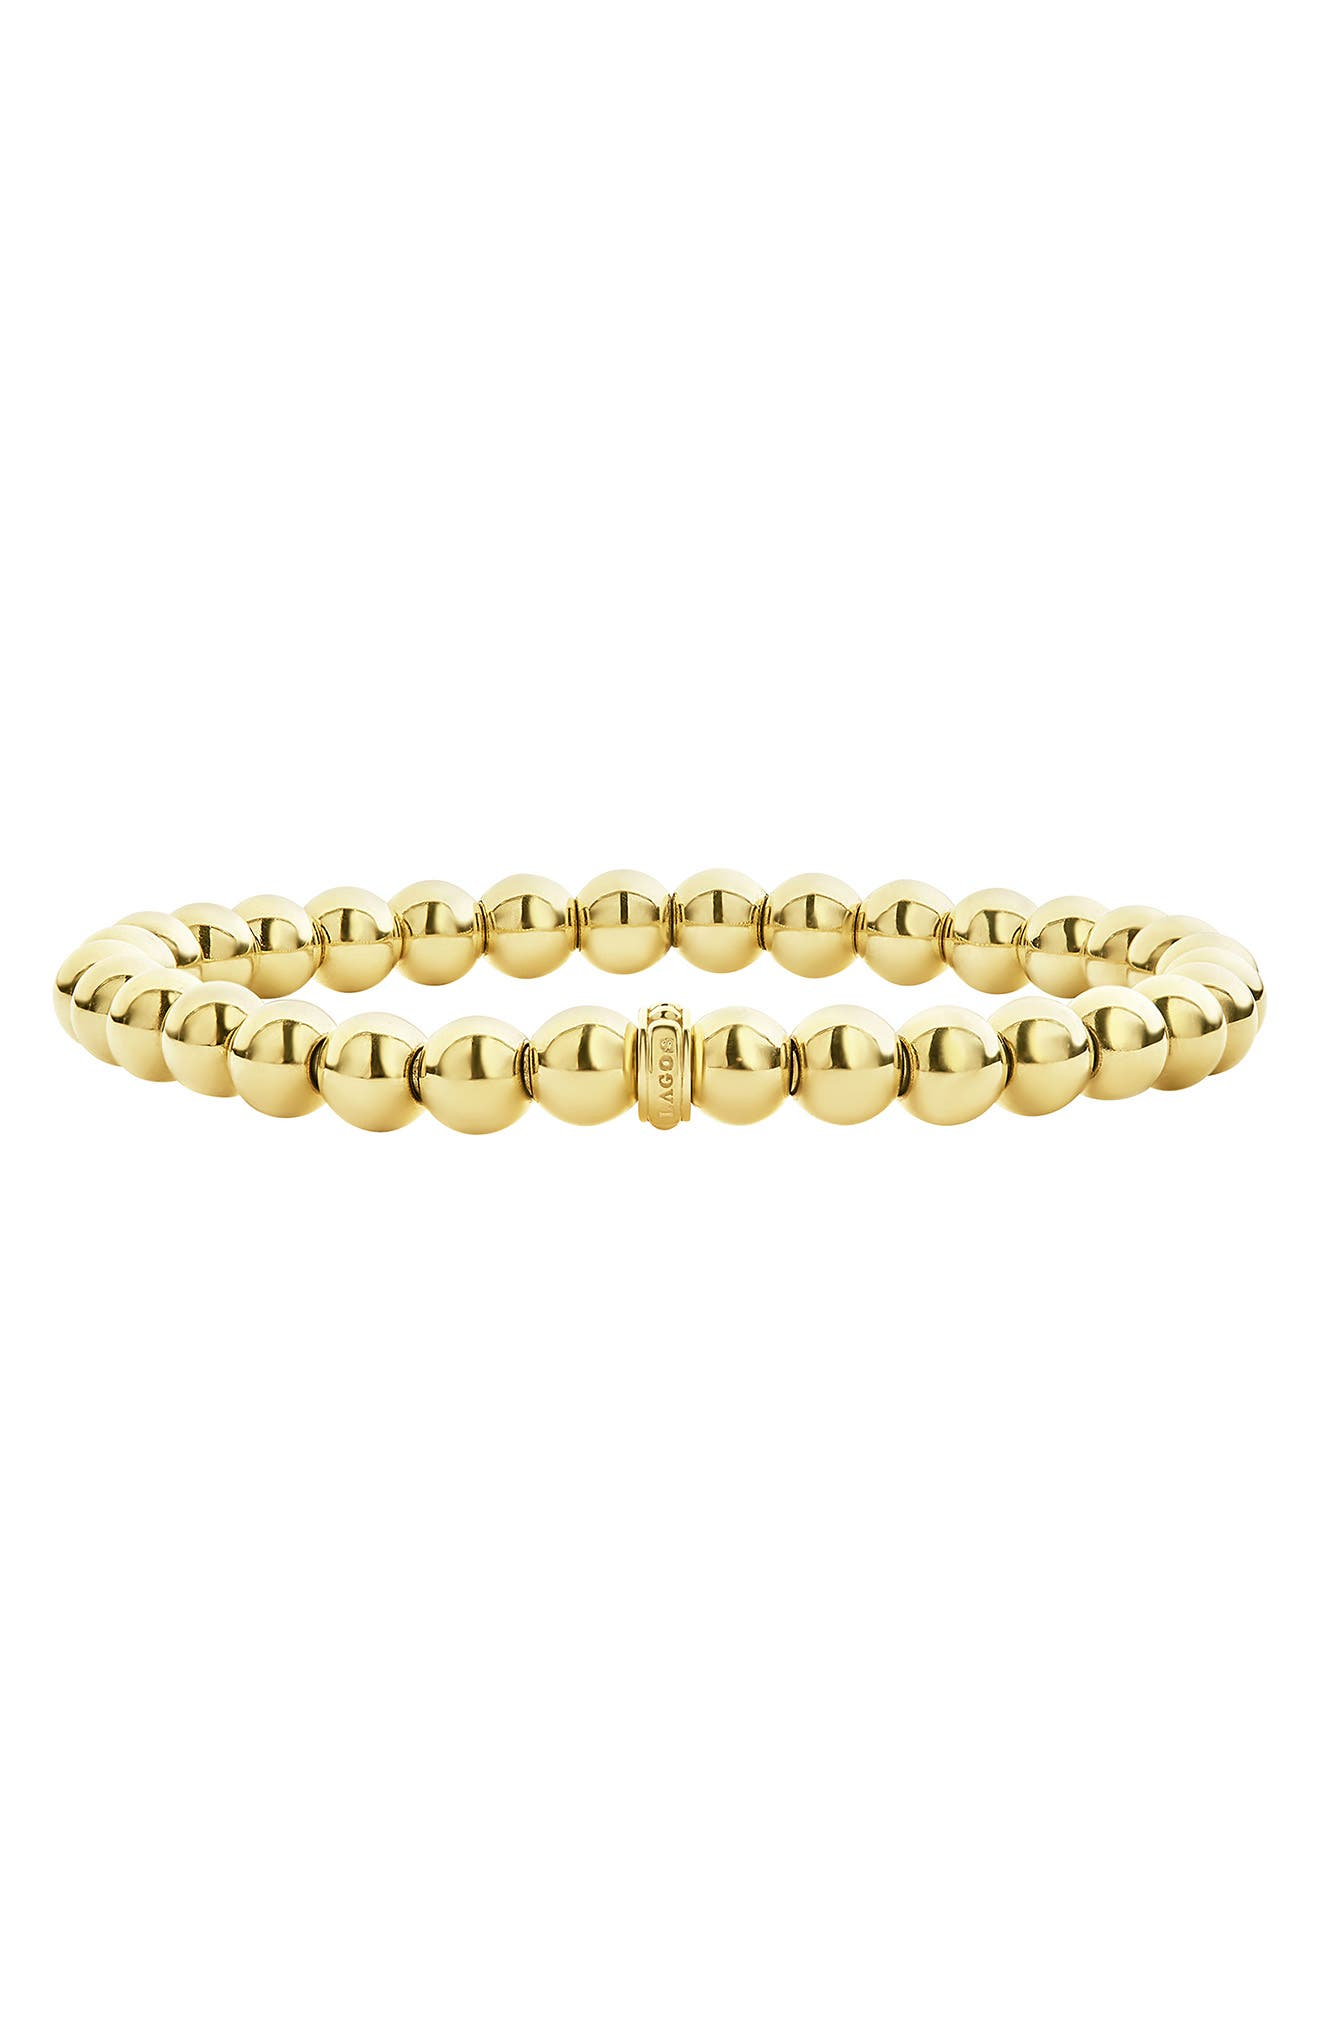 Caviar Gold Ball Stretch Bracelet,                             Main thumbnail 1, color,                             GOLD